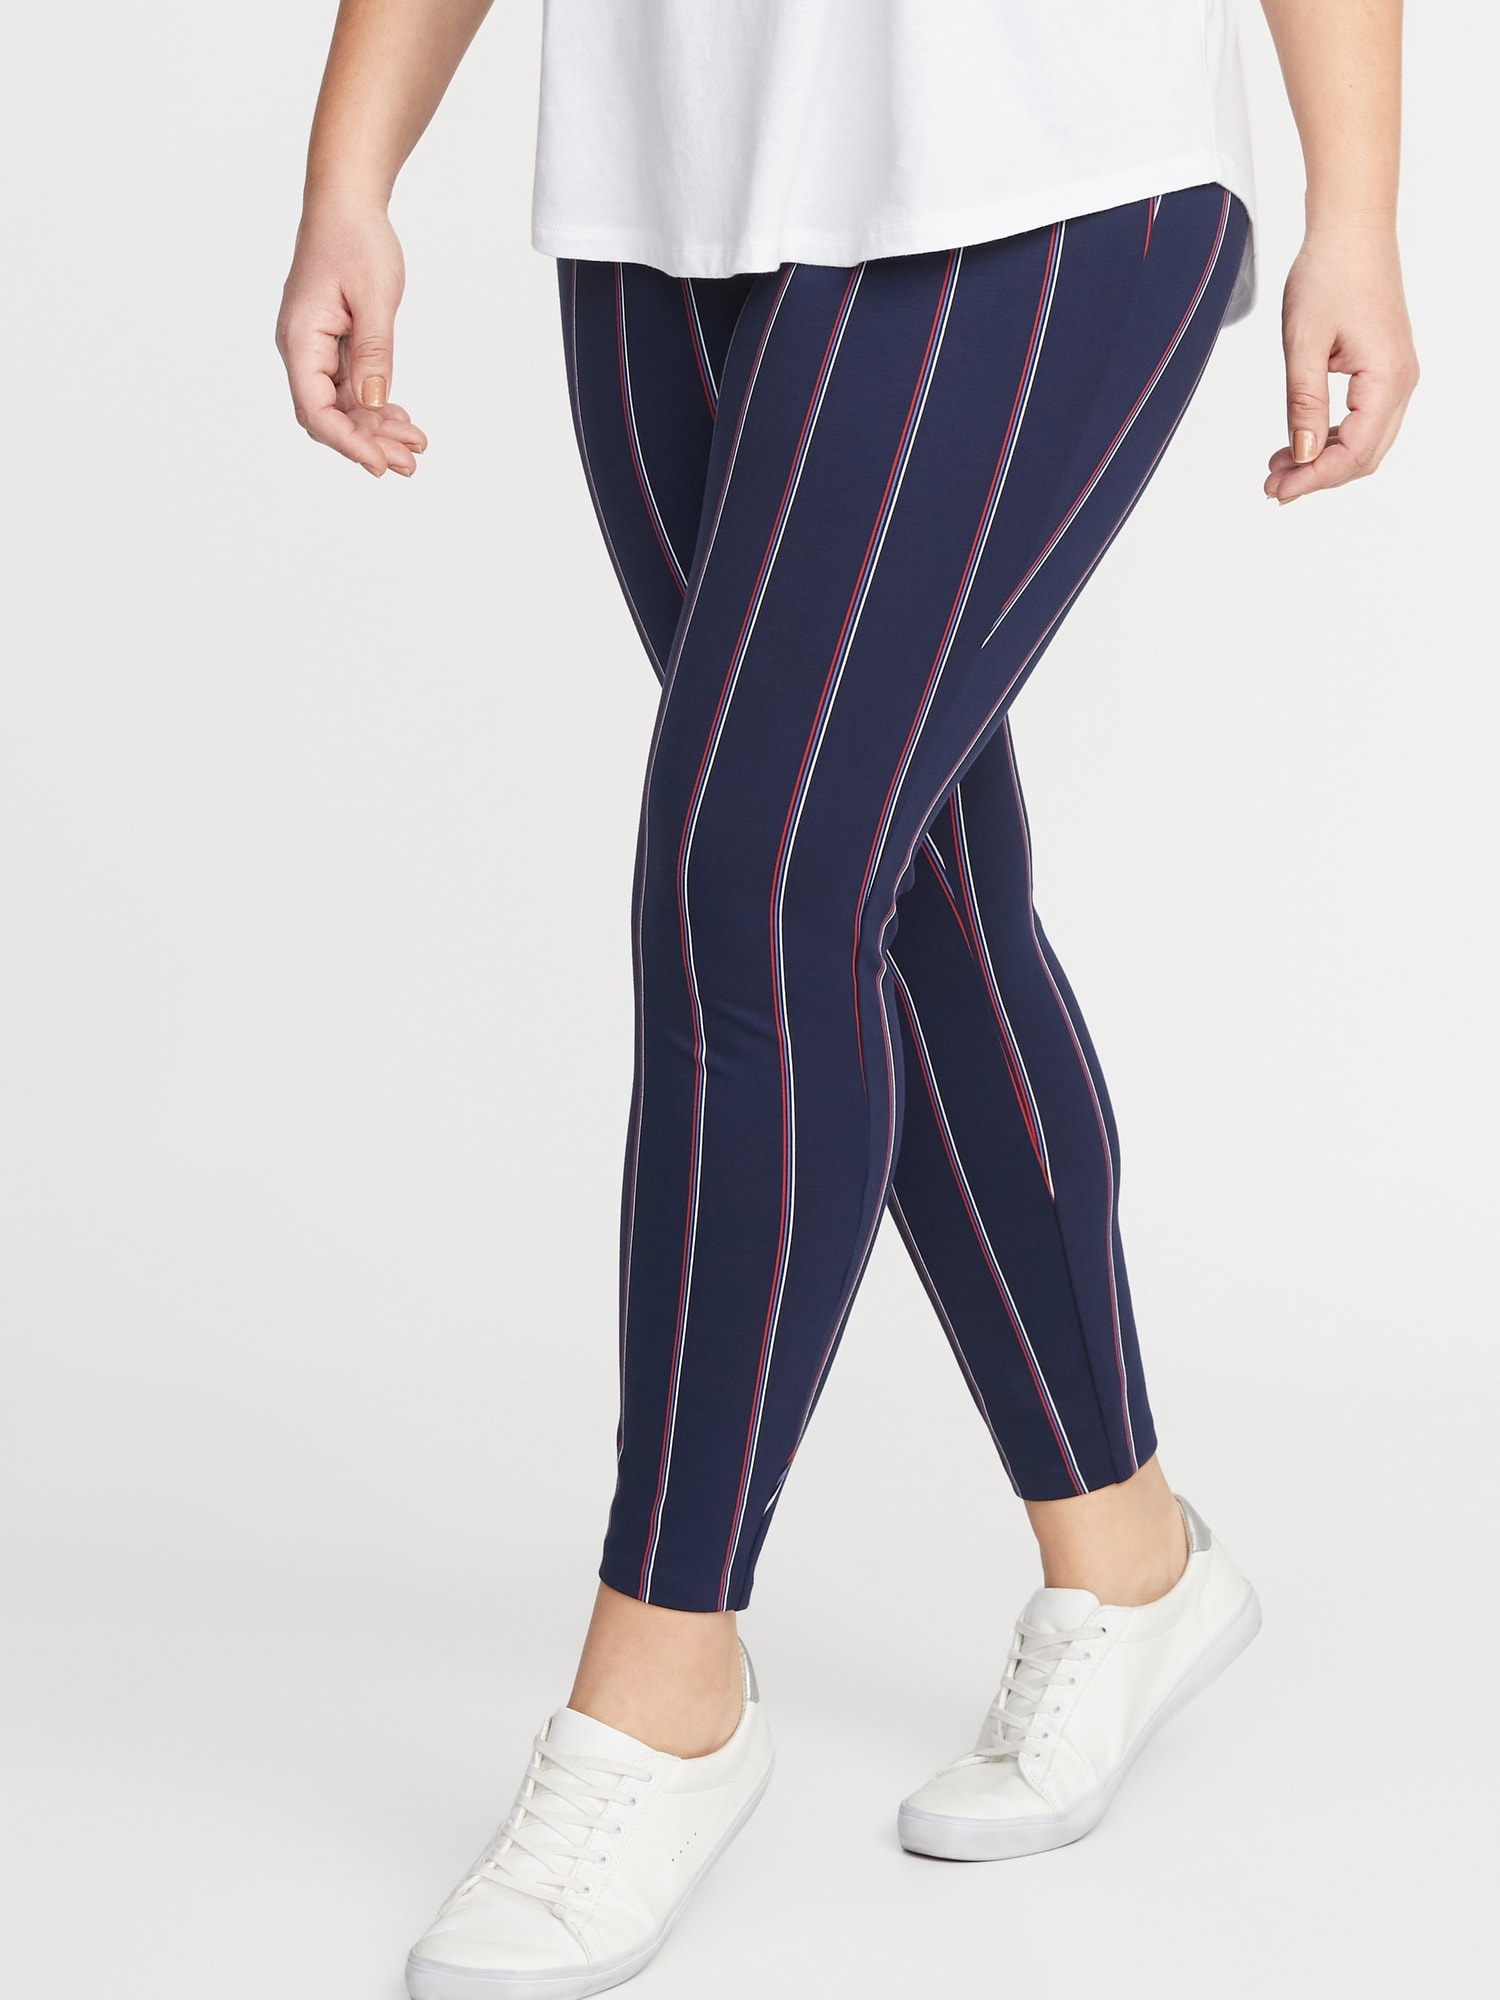 980745d8049 High-Rise Striped Ponte-Knit Plus-Size Stevie Pants